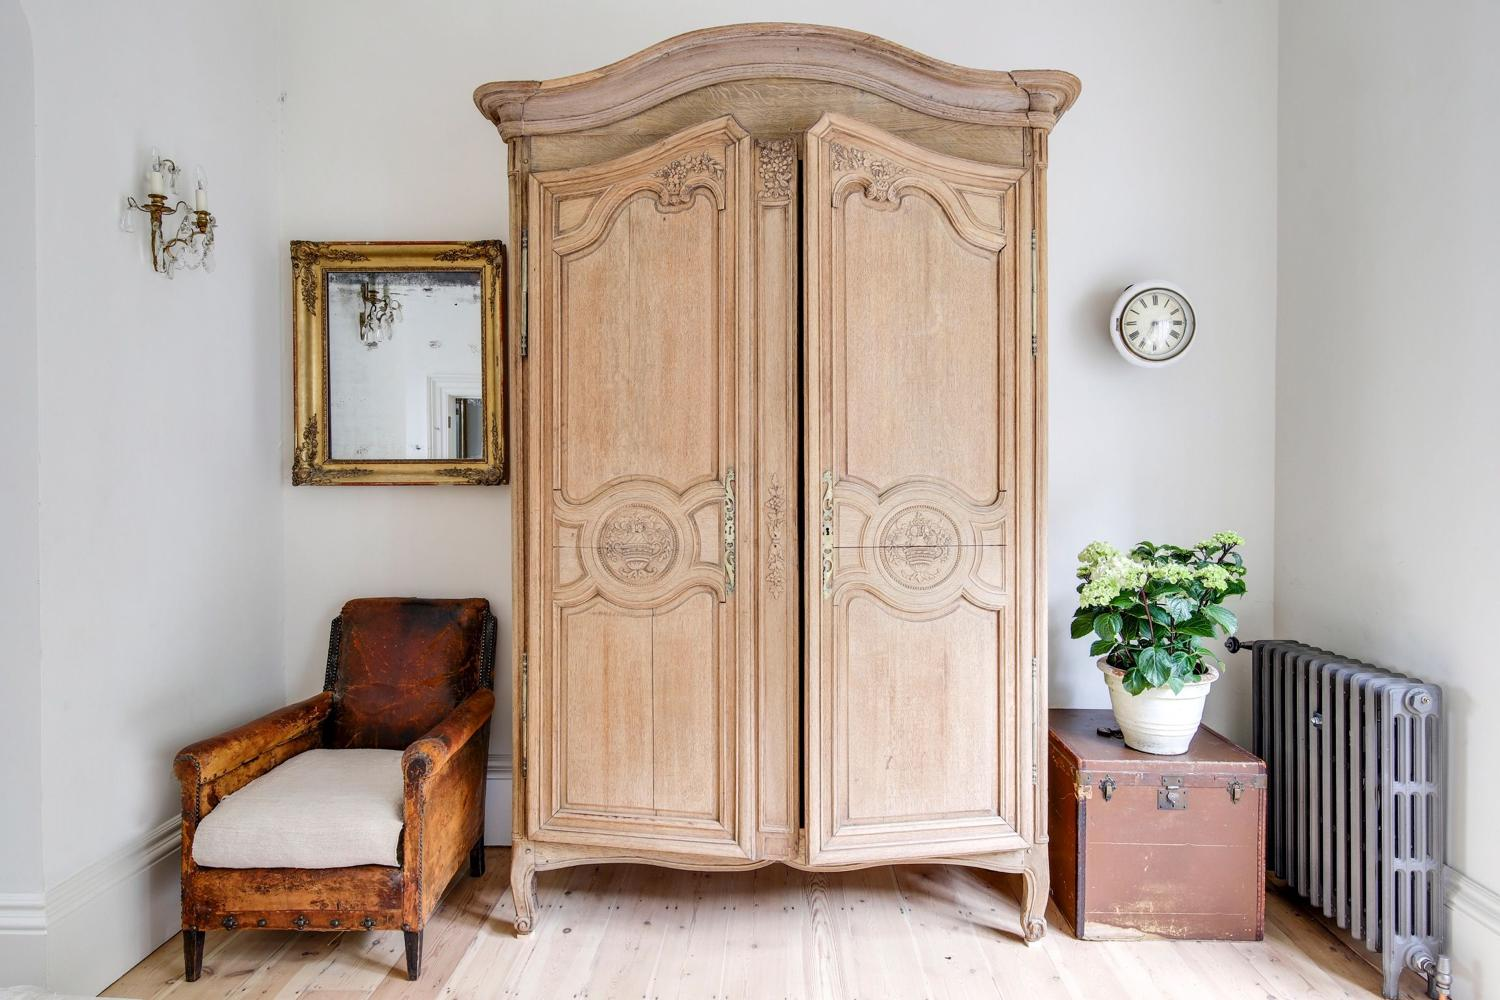 19th century French antique oak armoire wardrobe linen press